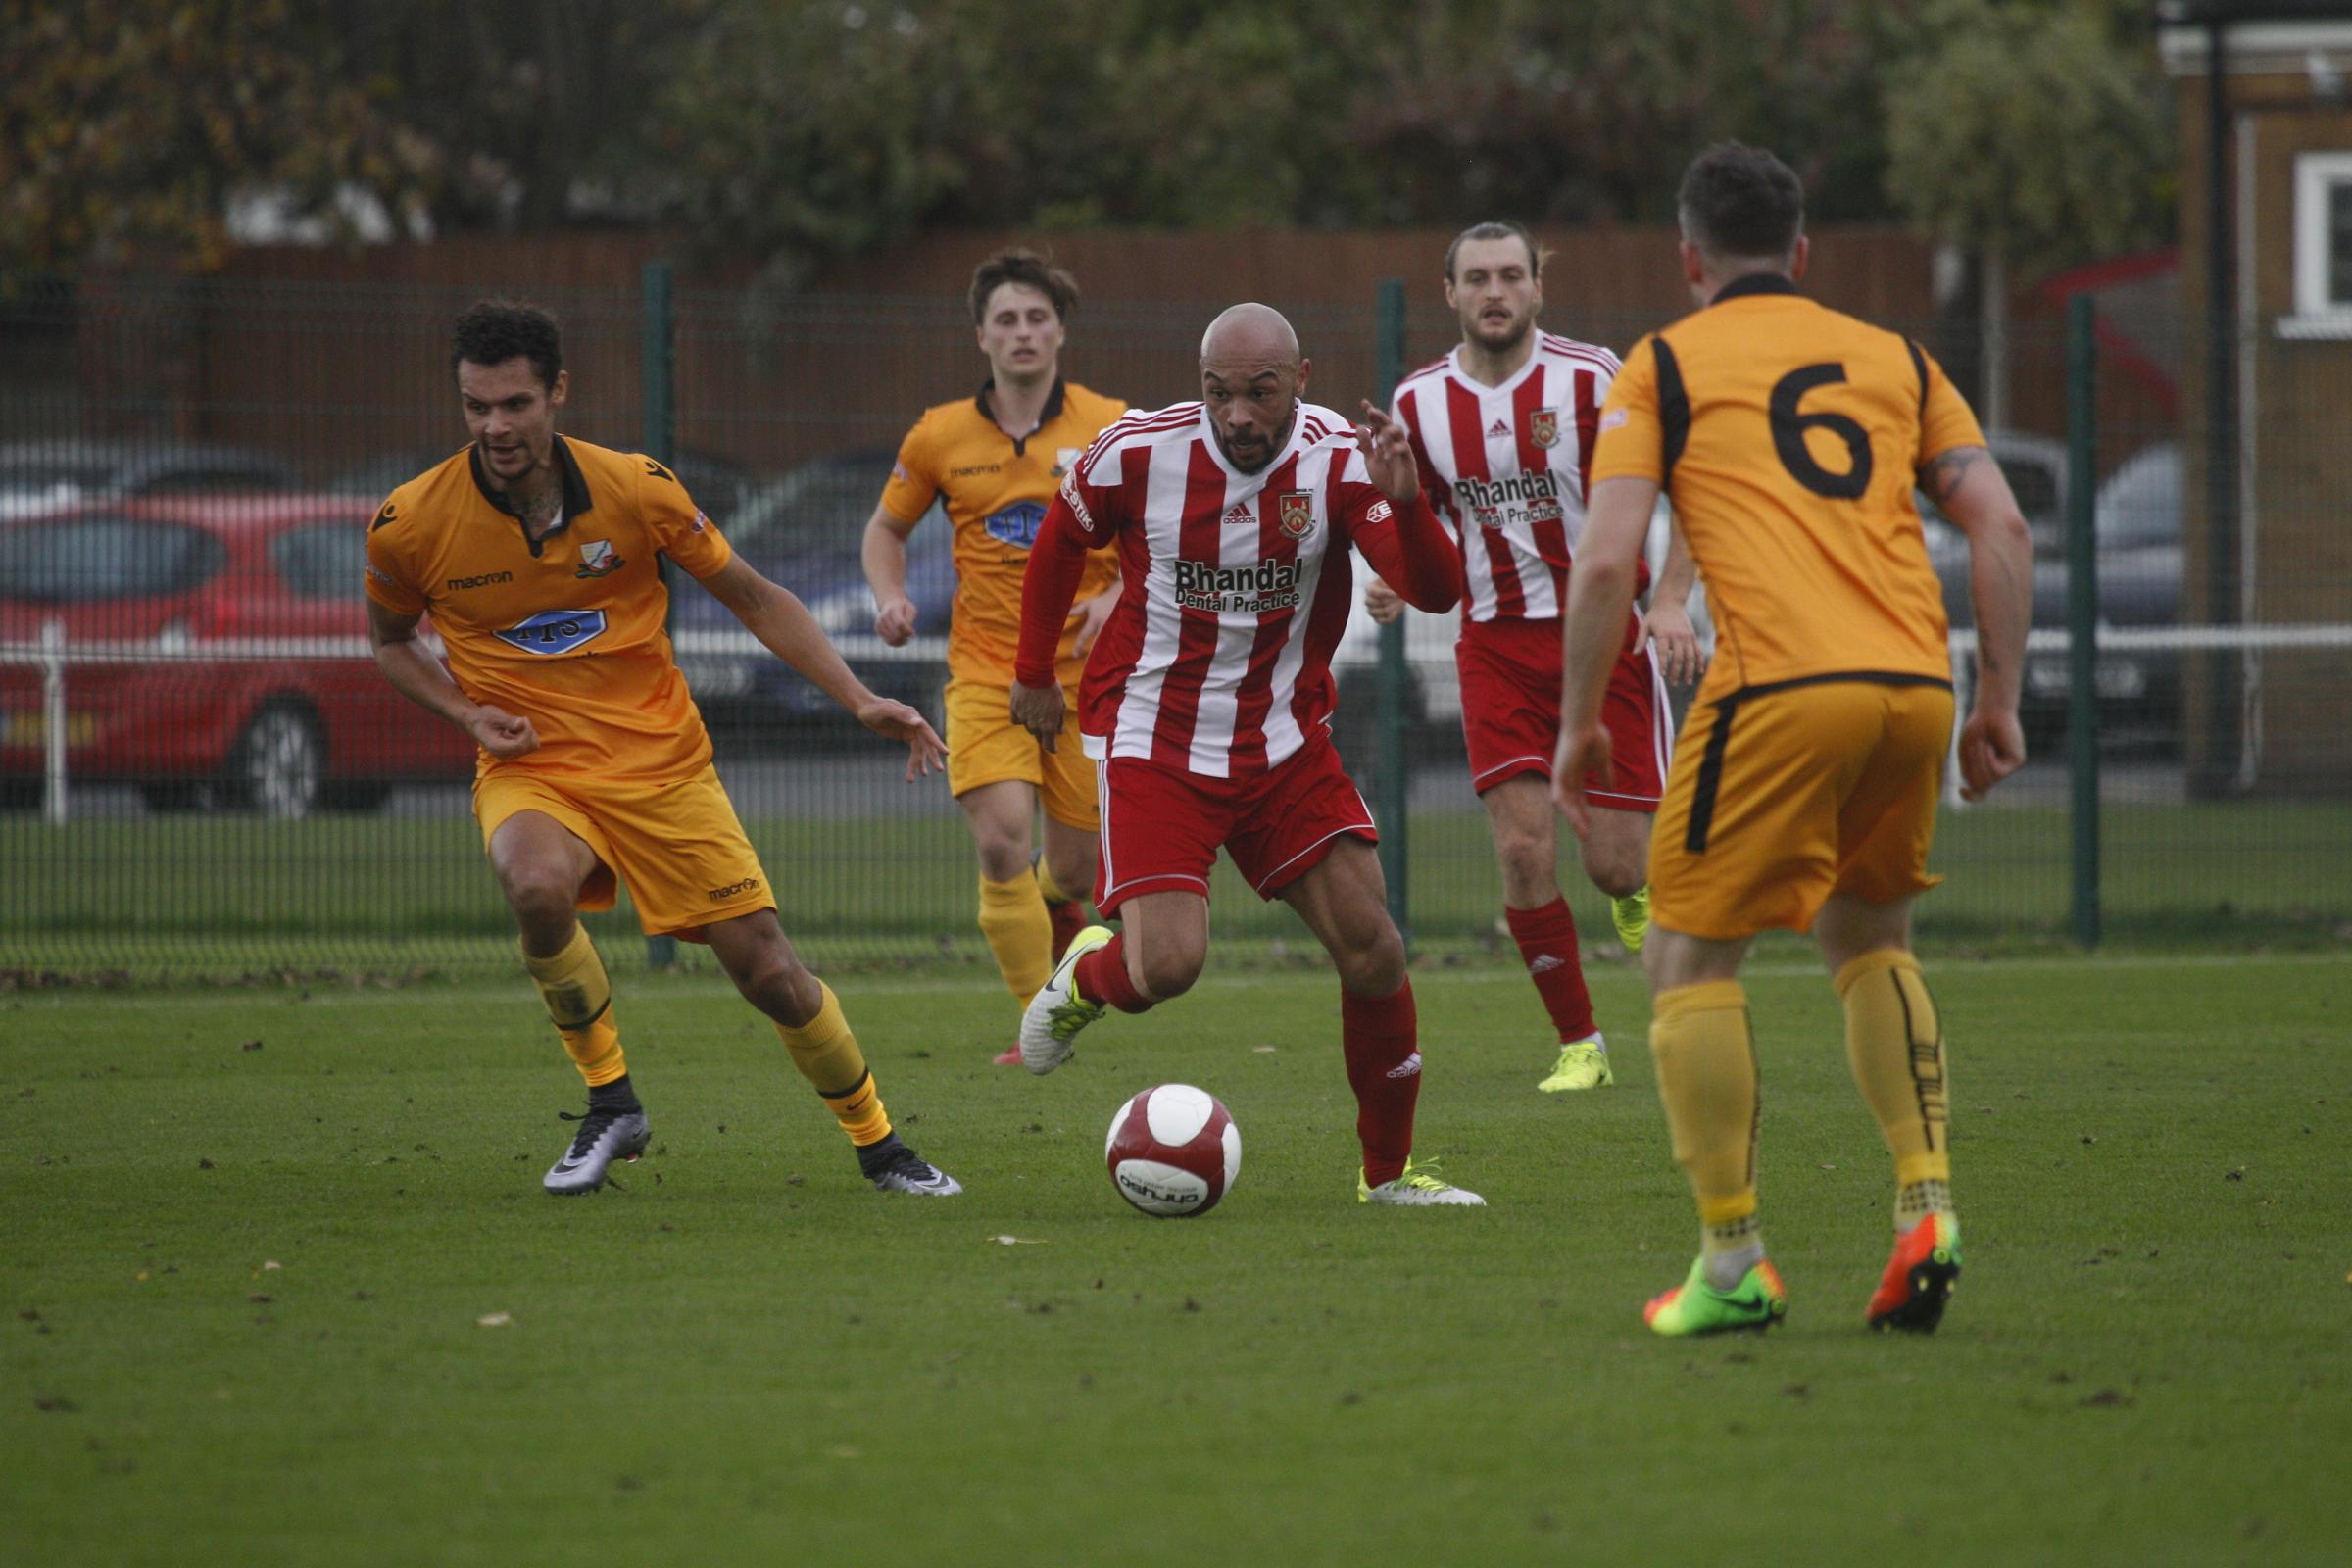 Aaron Forde could return to action against Billericay. Photo by Andrew Roper